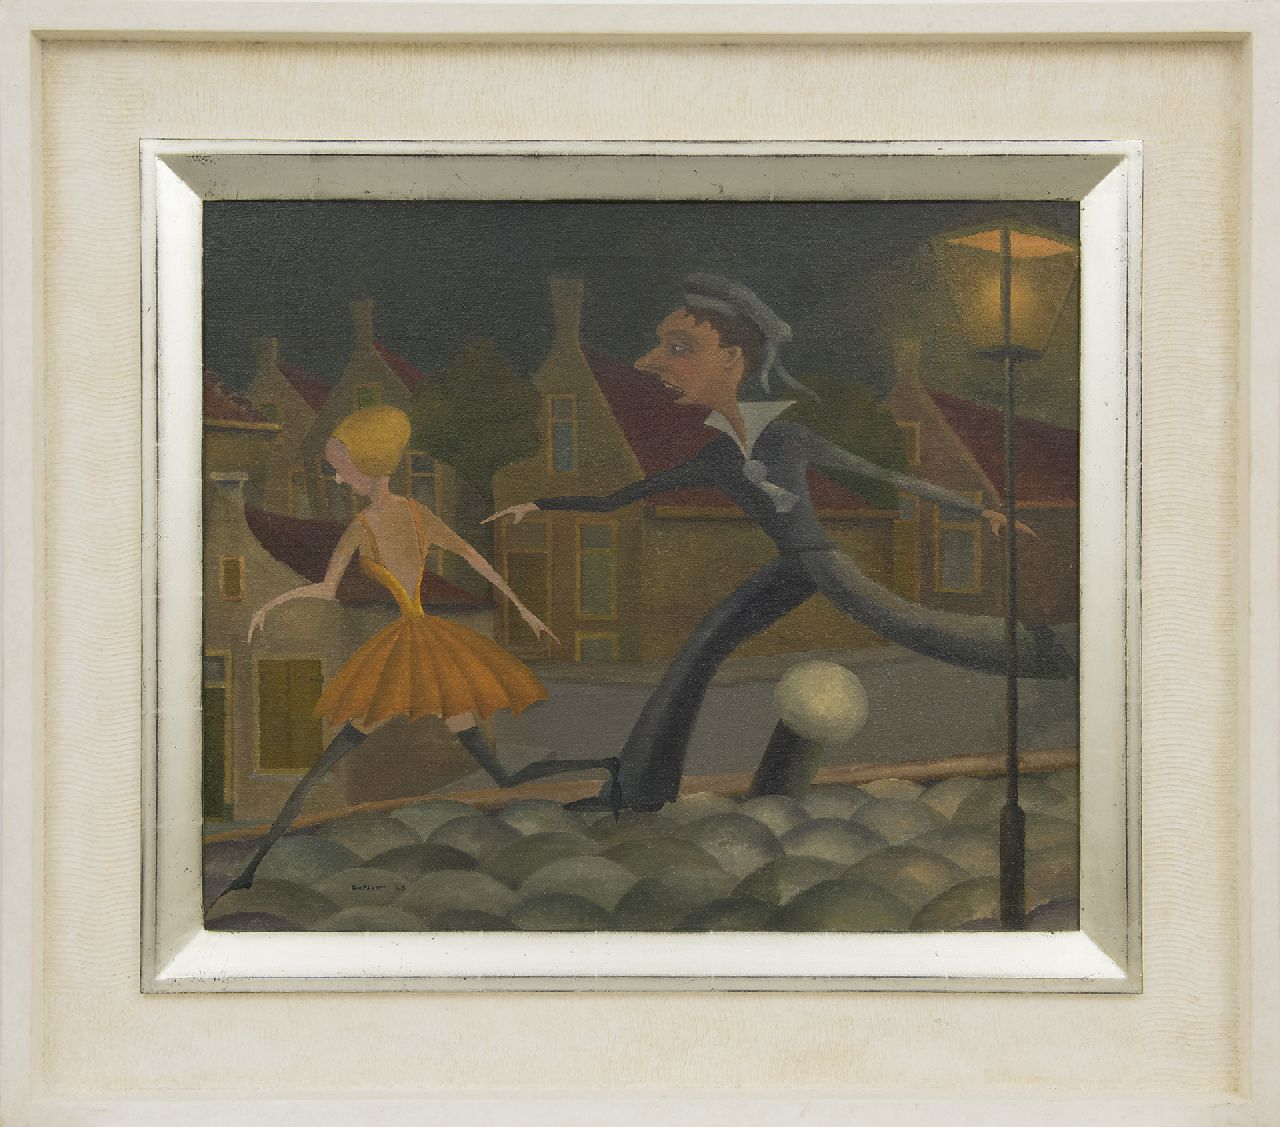 Pape A.J.  | Antonius Josephus 'Ton' Pape | Paintings offered for sale | The amorous sailor, oil on canvas 50.3 x 60.6 cm, signed l.l. and dated '45